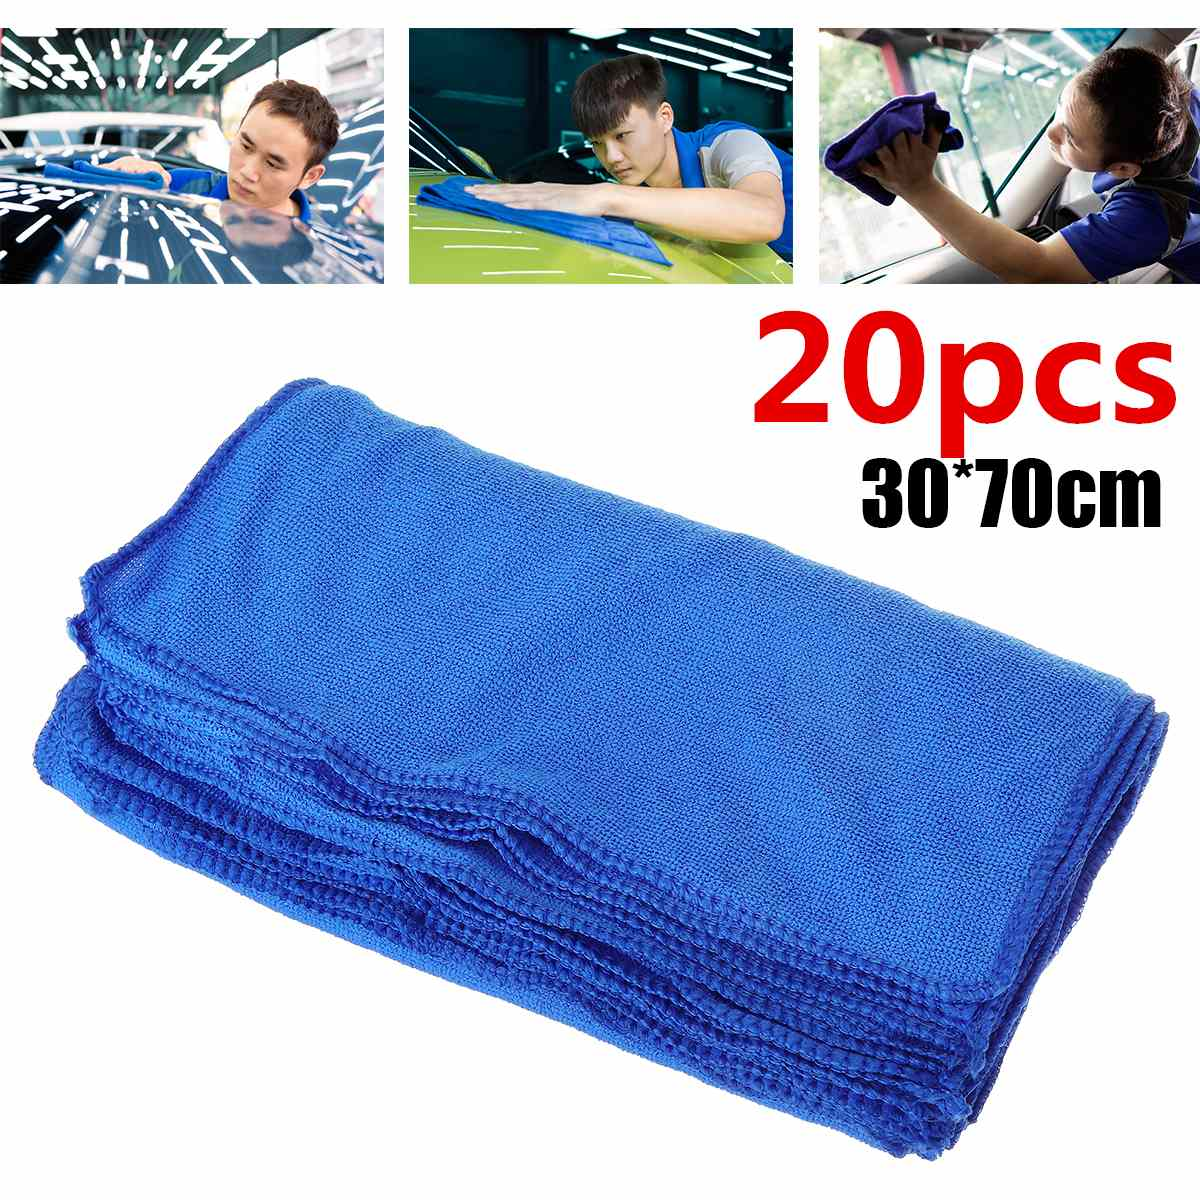 20pcs 30x70cm Cleaning Towel Microfiber Cloth No-Scratch Car Polishing Detailing Car Washer Kitchen Wash Absorbent Cloths